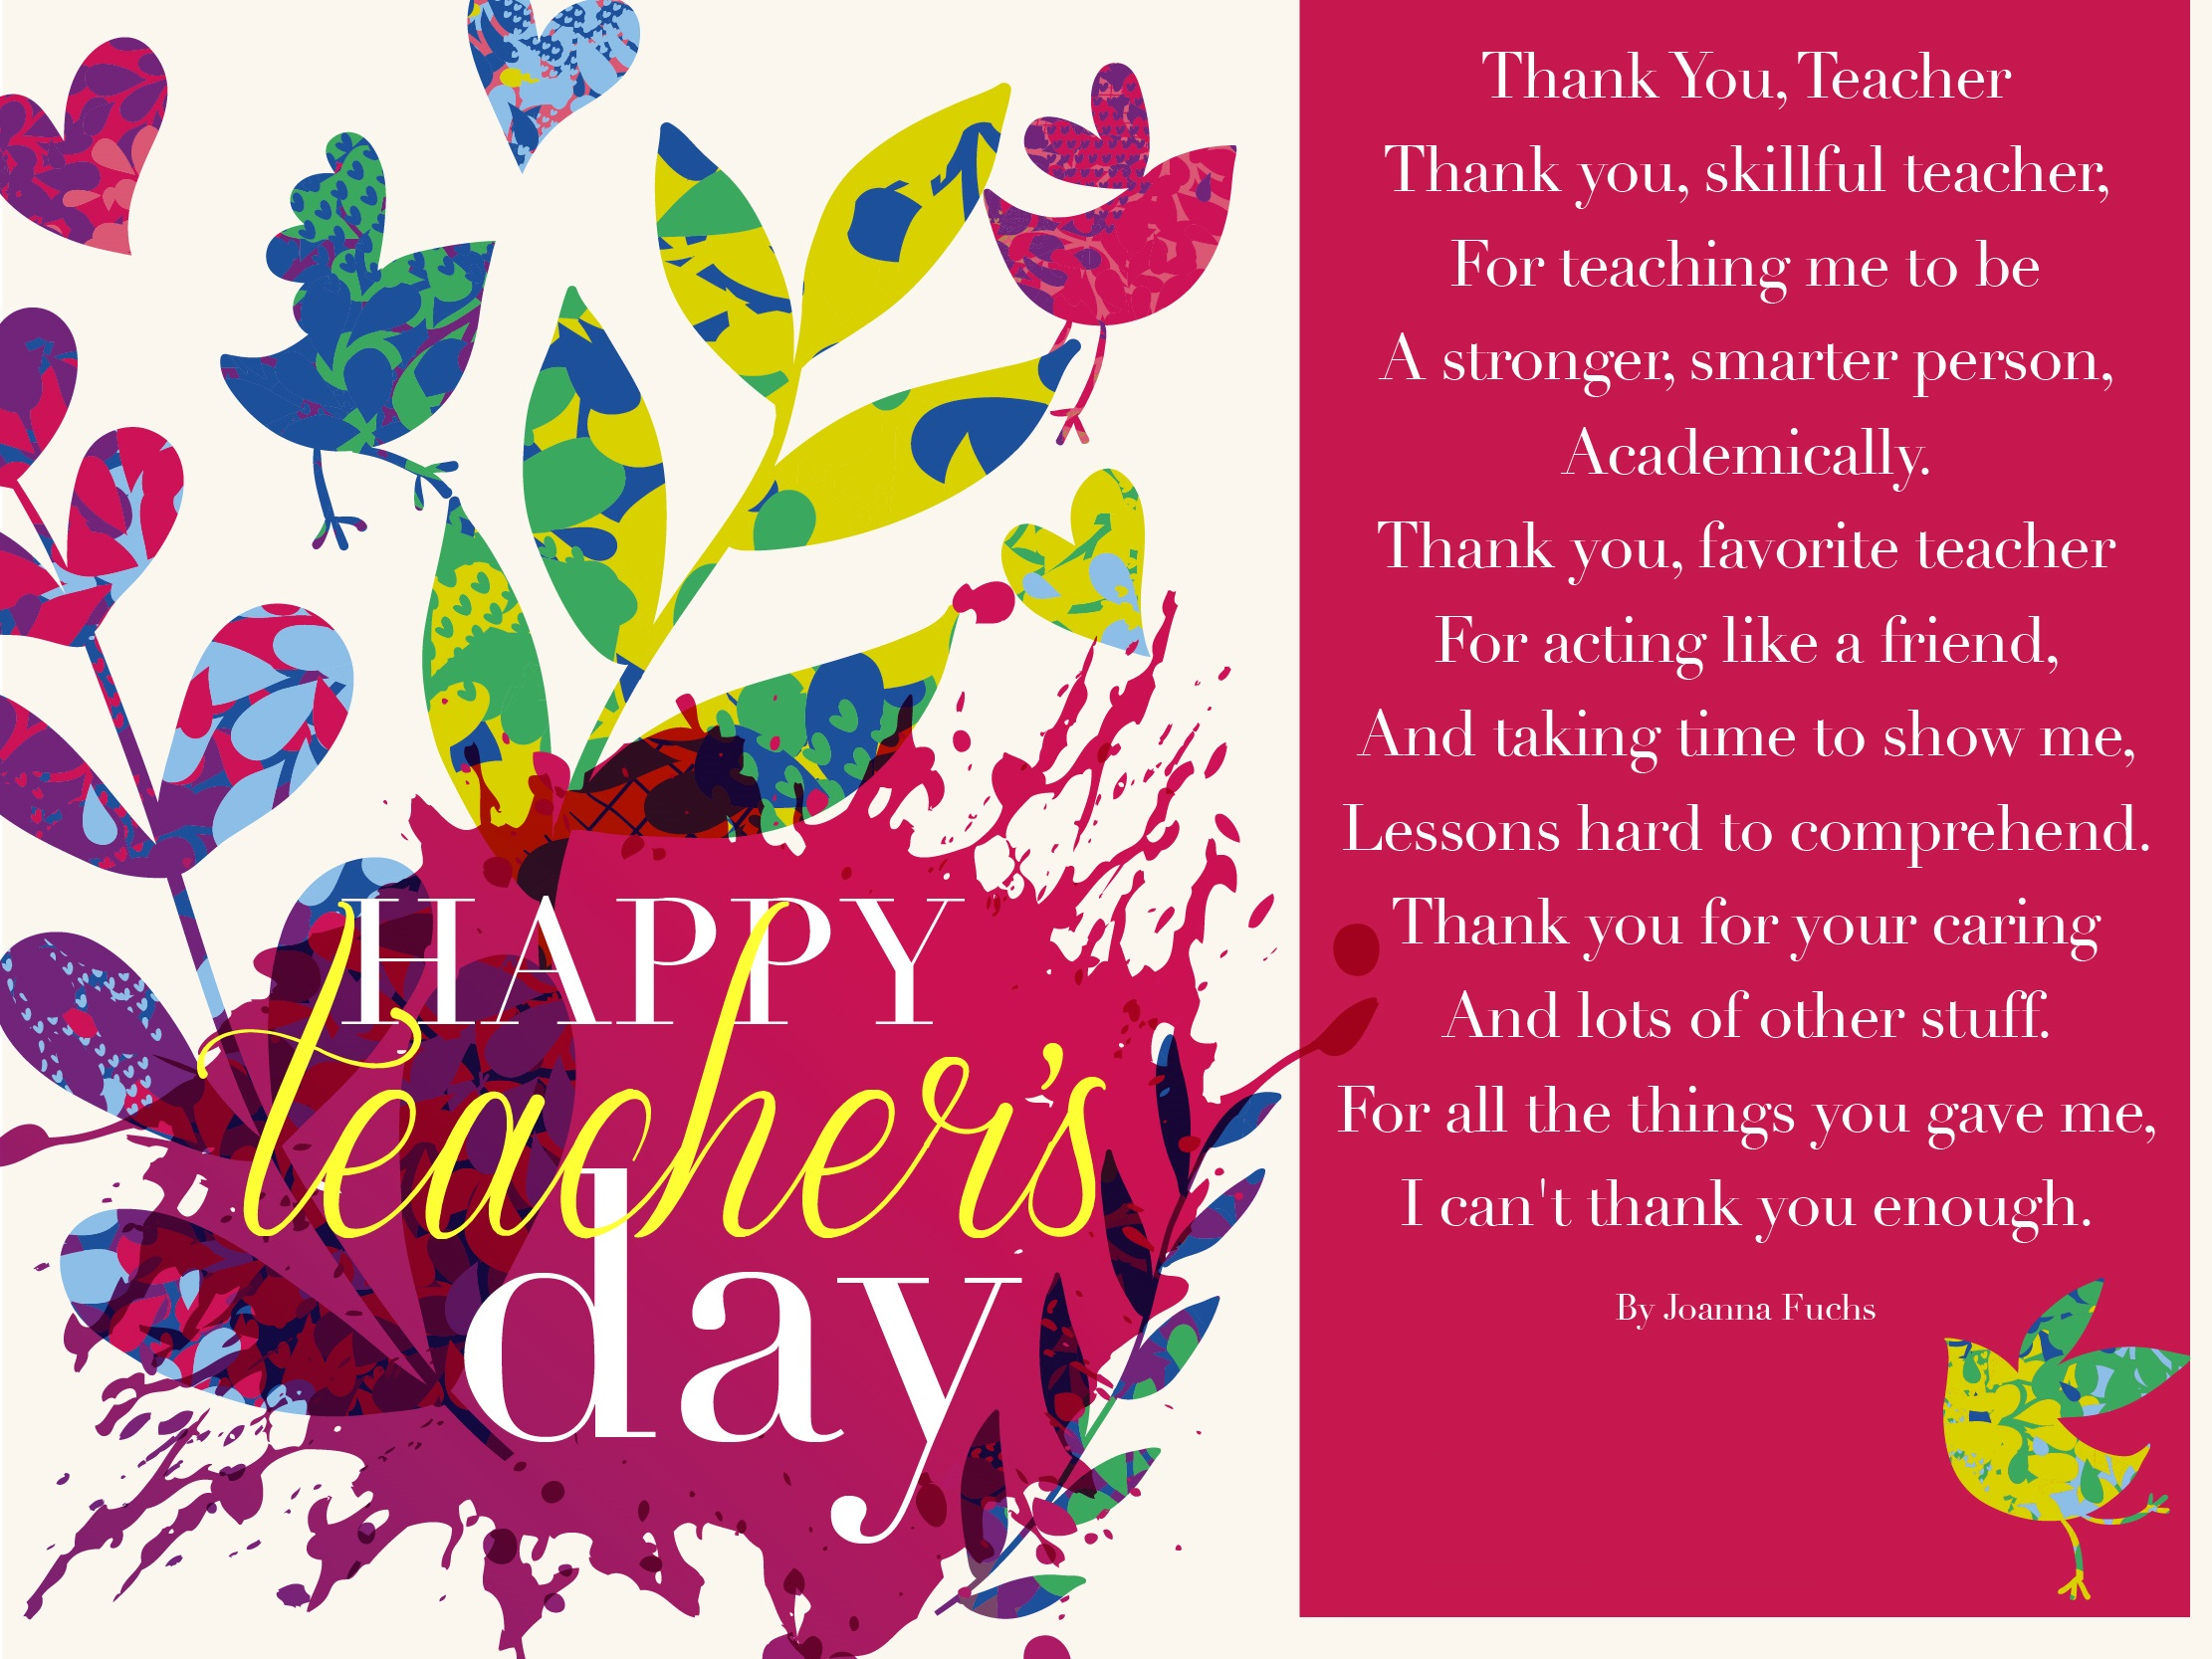 110 Most Beautiful World Teacher Day 2018 Greeting Picture Ideas